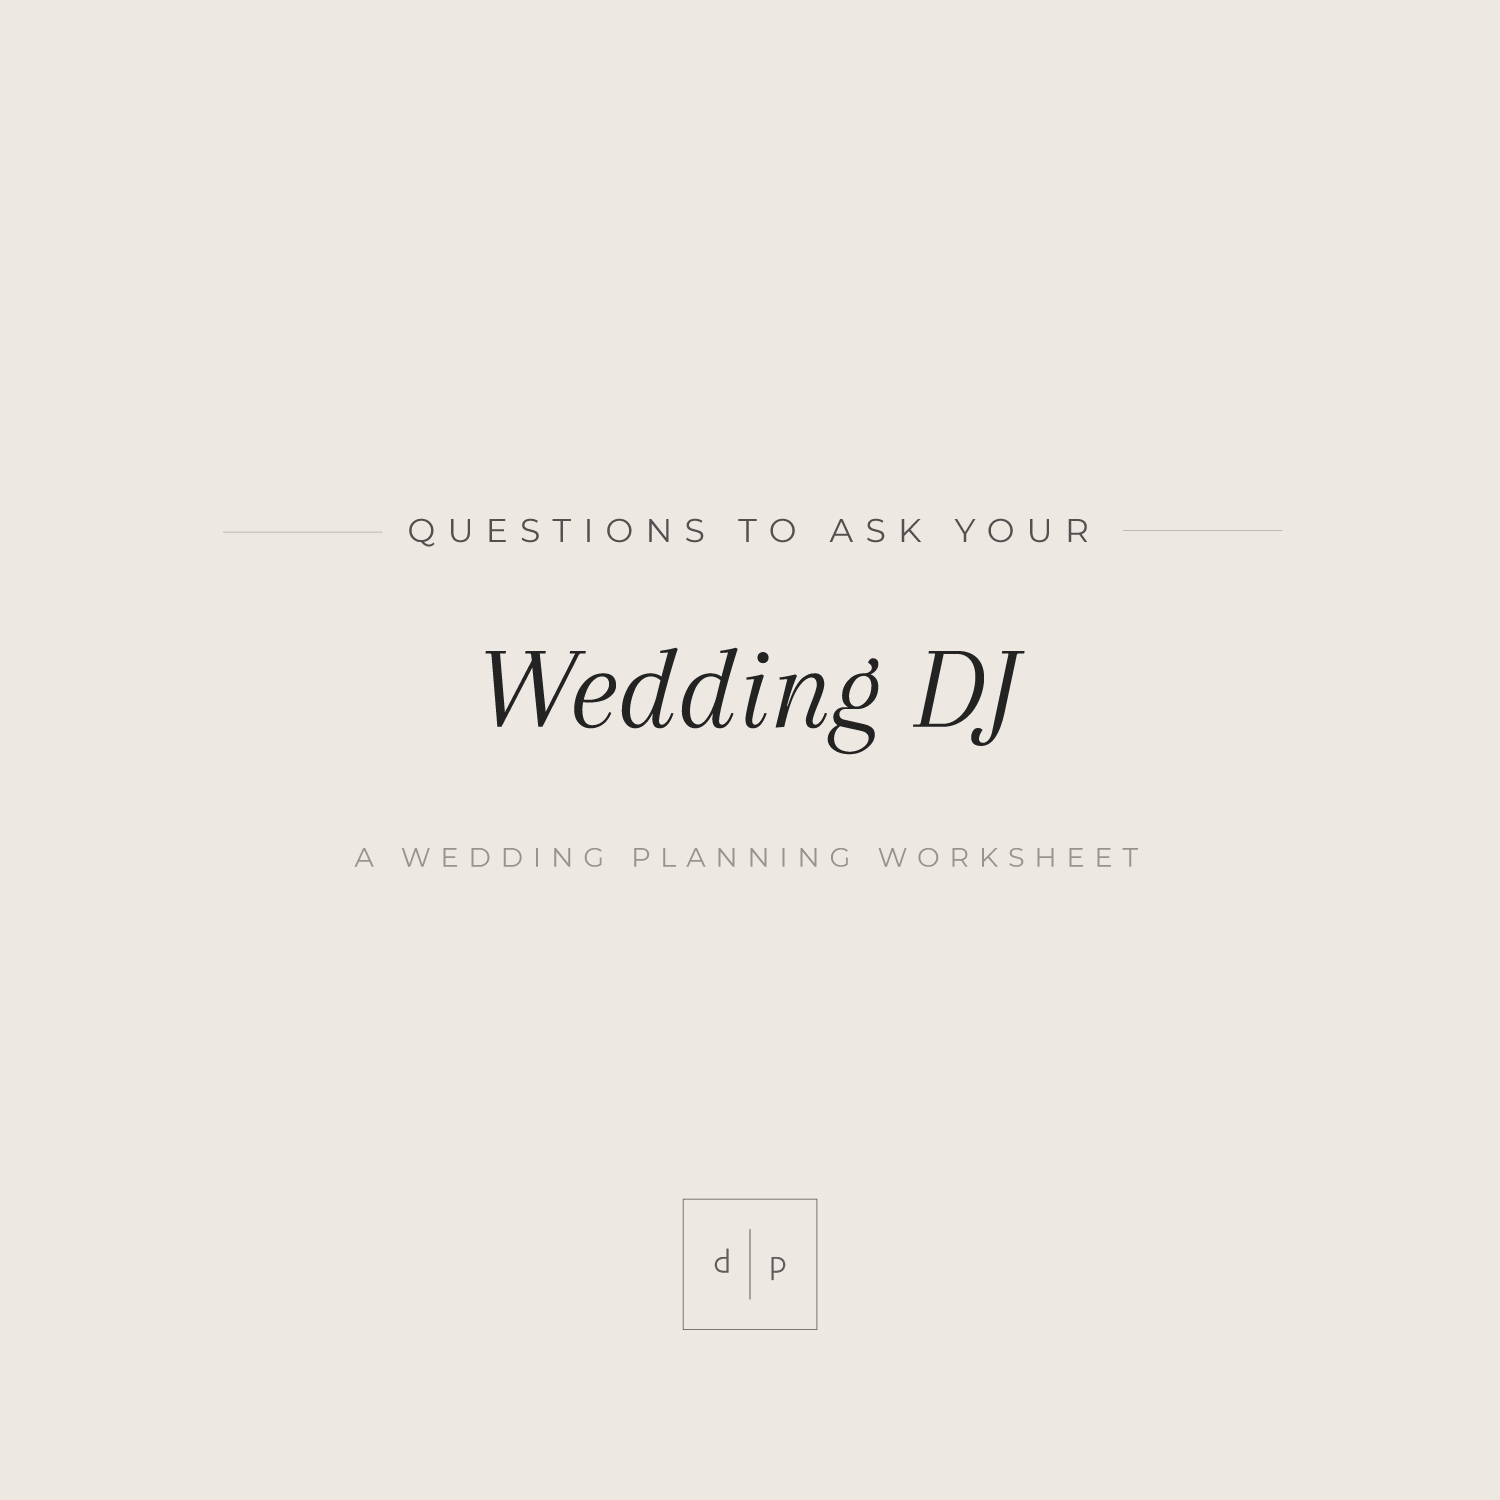 Worksheet: Questions to Ask Your Wedding DJ